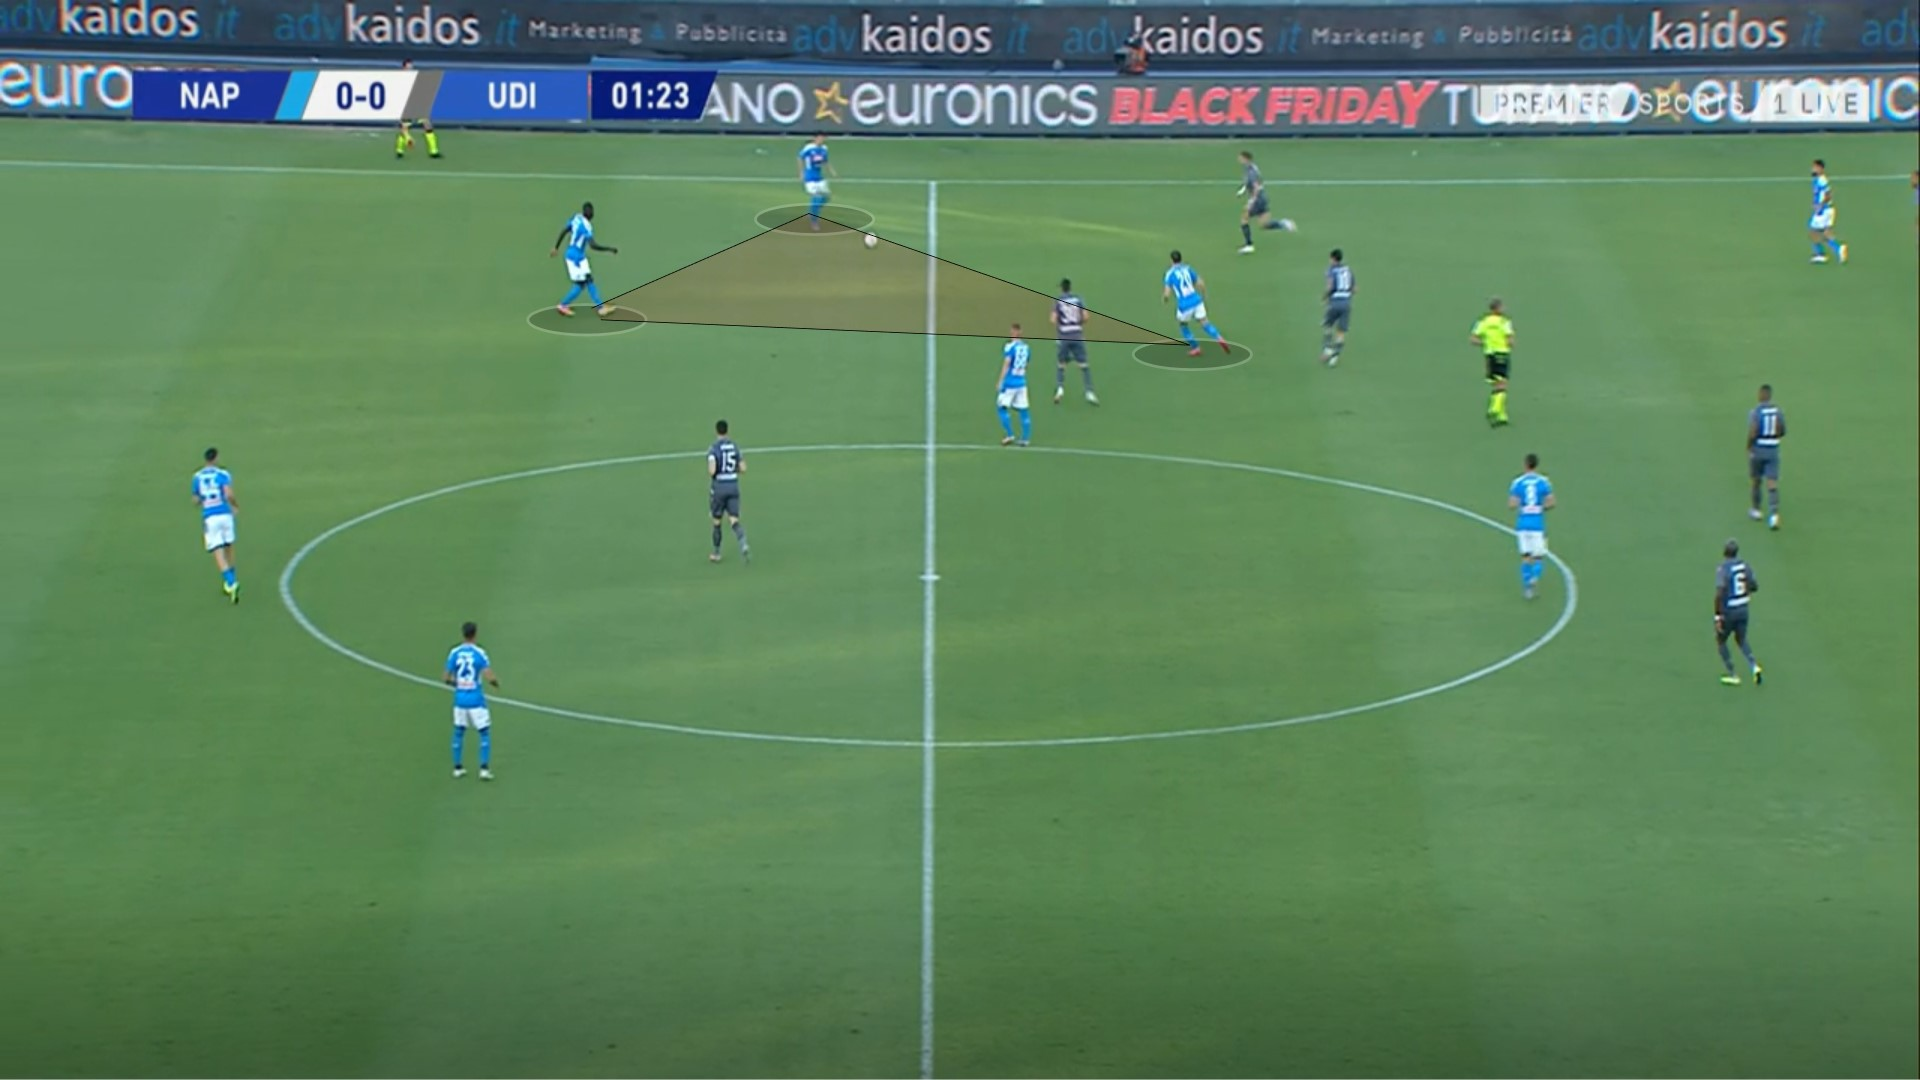 Serie A 2019/20: Napoli vs Udinese - tactical analysis tactics